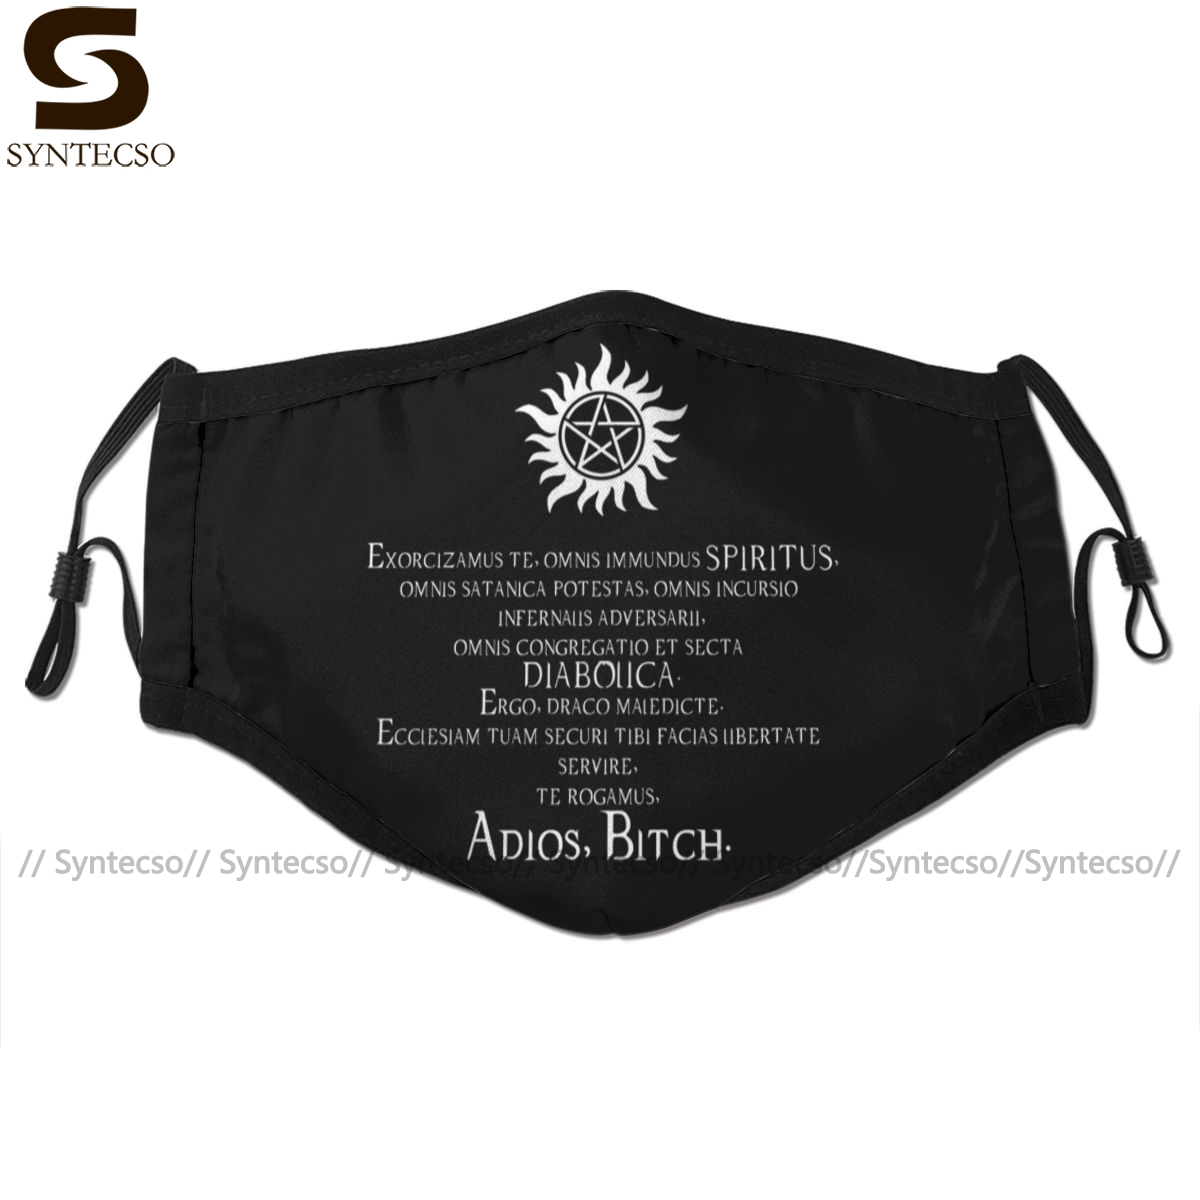 Pentagram Mouth Face Mask Supernatural Adios Bitch Exorcism Facial Mask Funny Fashion With 2 Filters For Adult